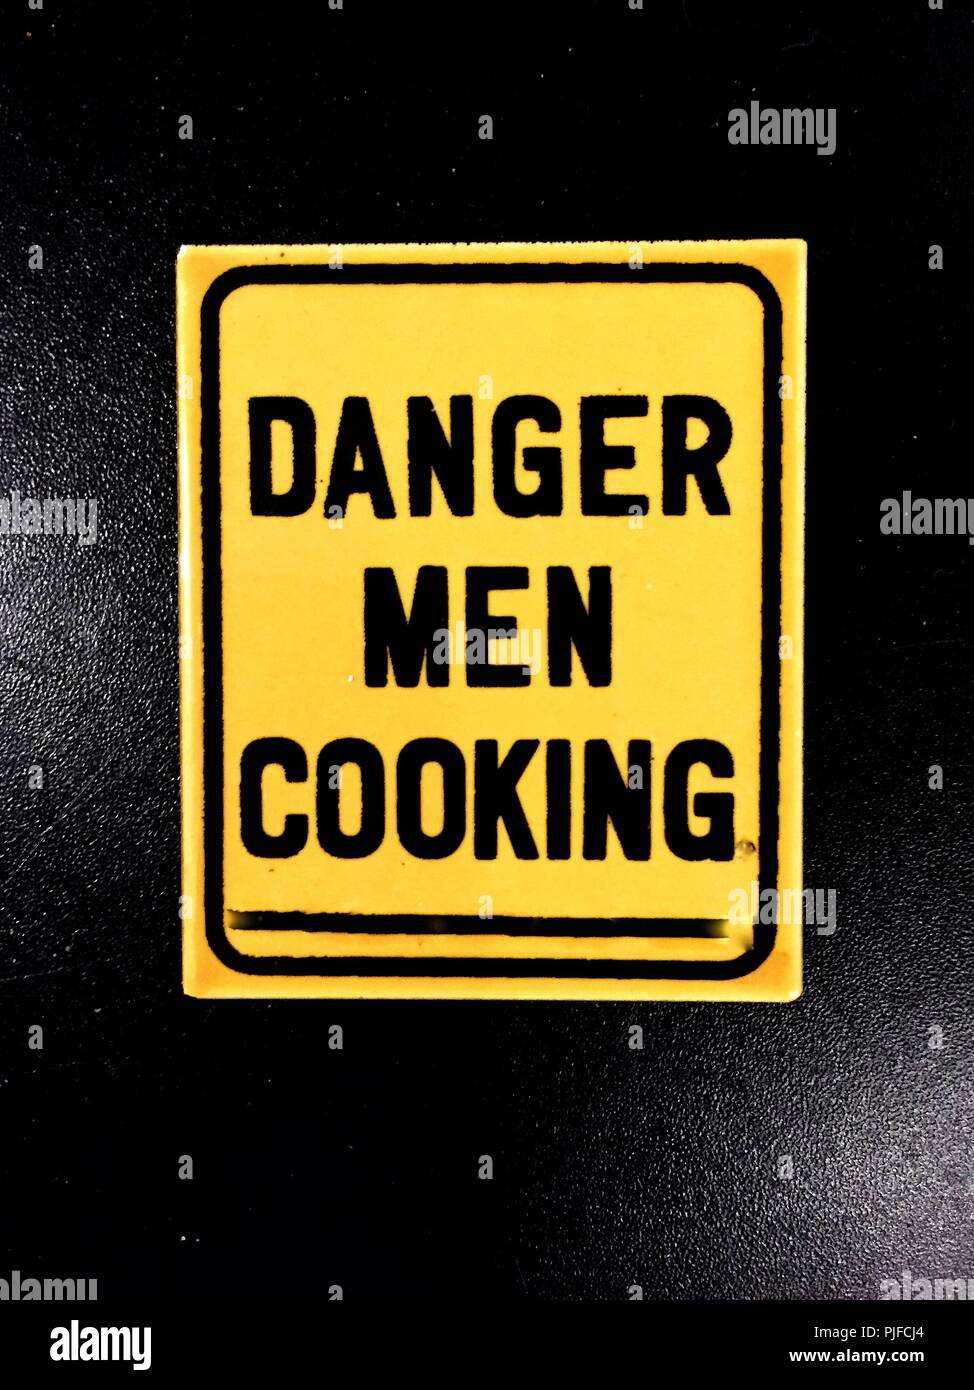 A funny fridge magnet with the words Danger Men Cooking printed on - Stock Image